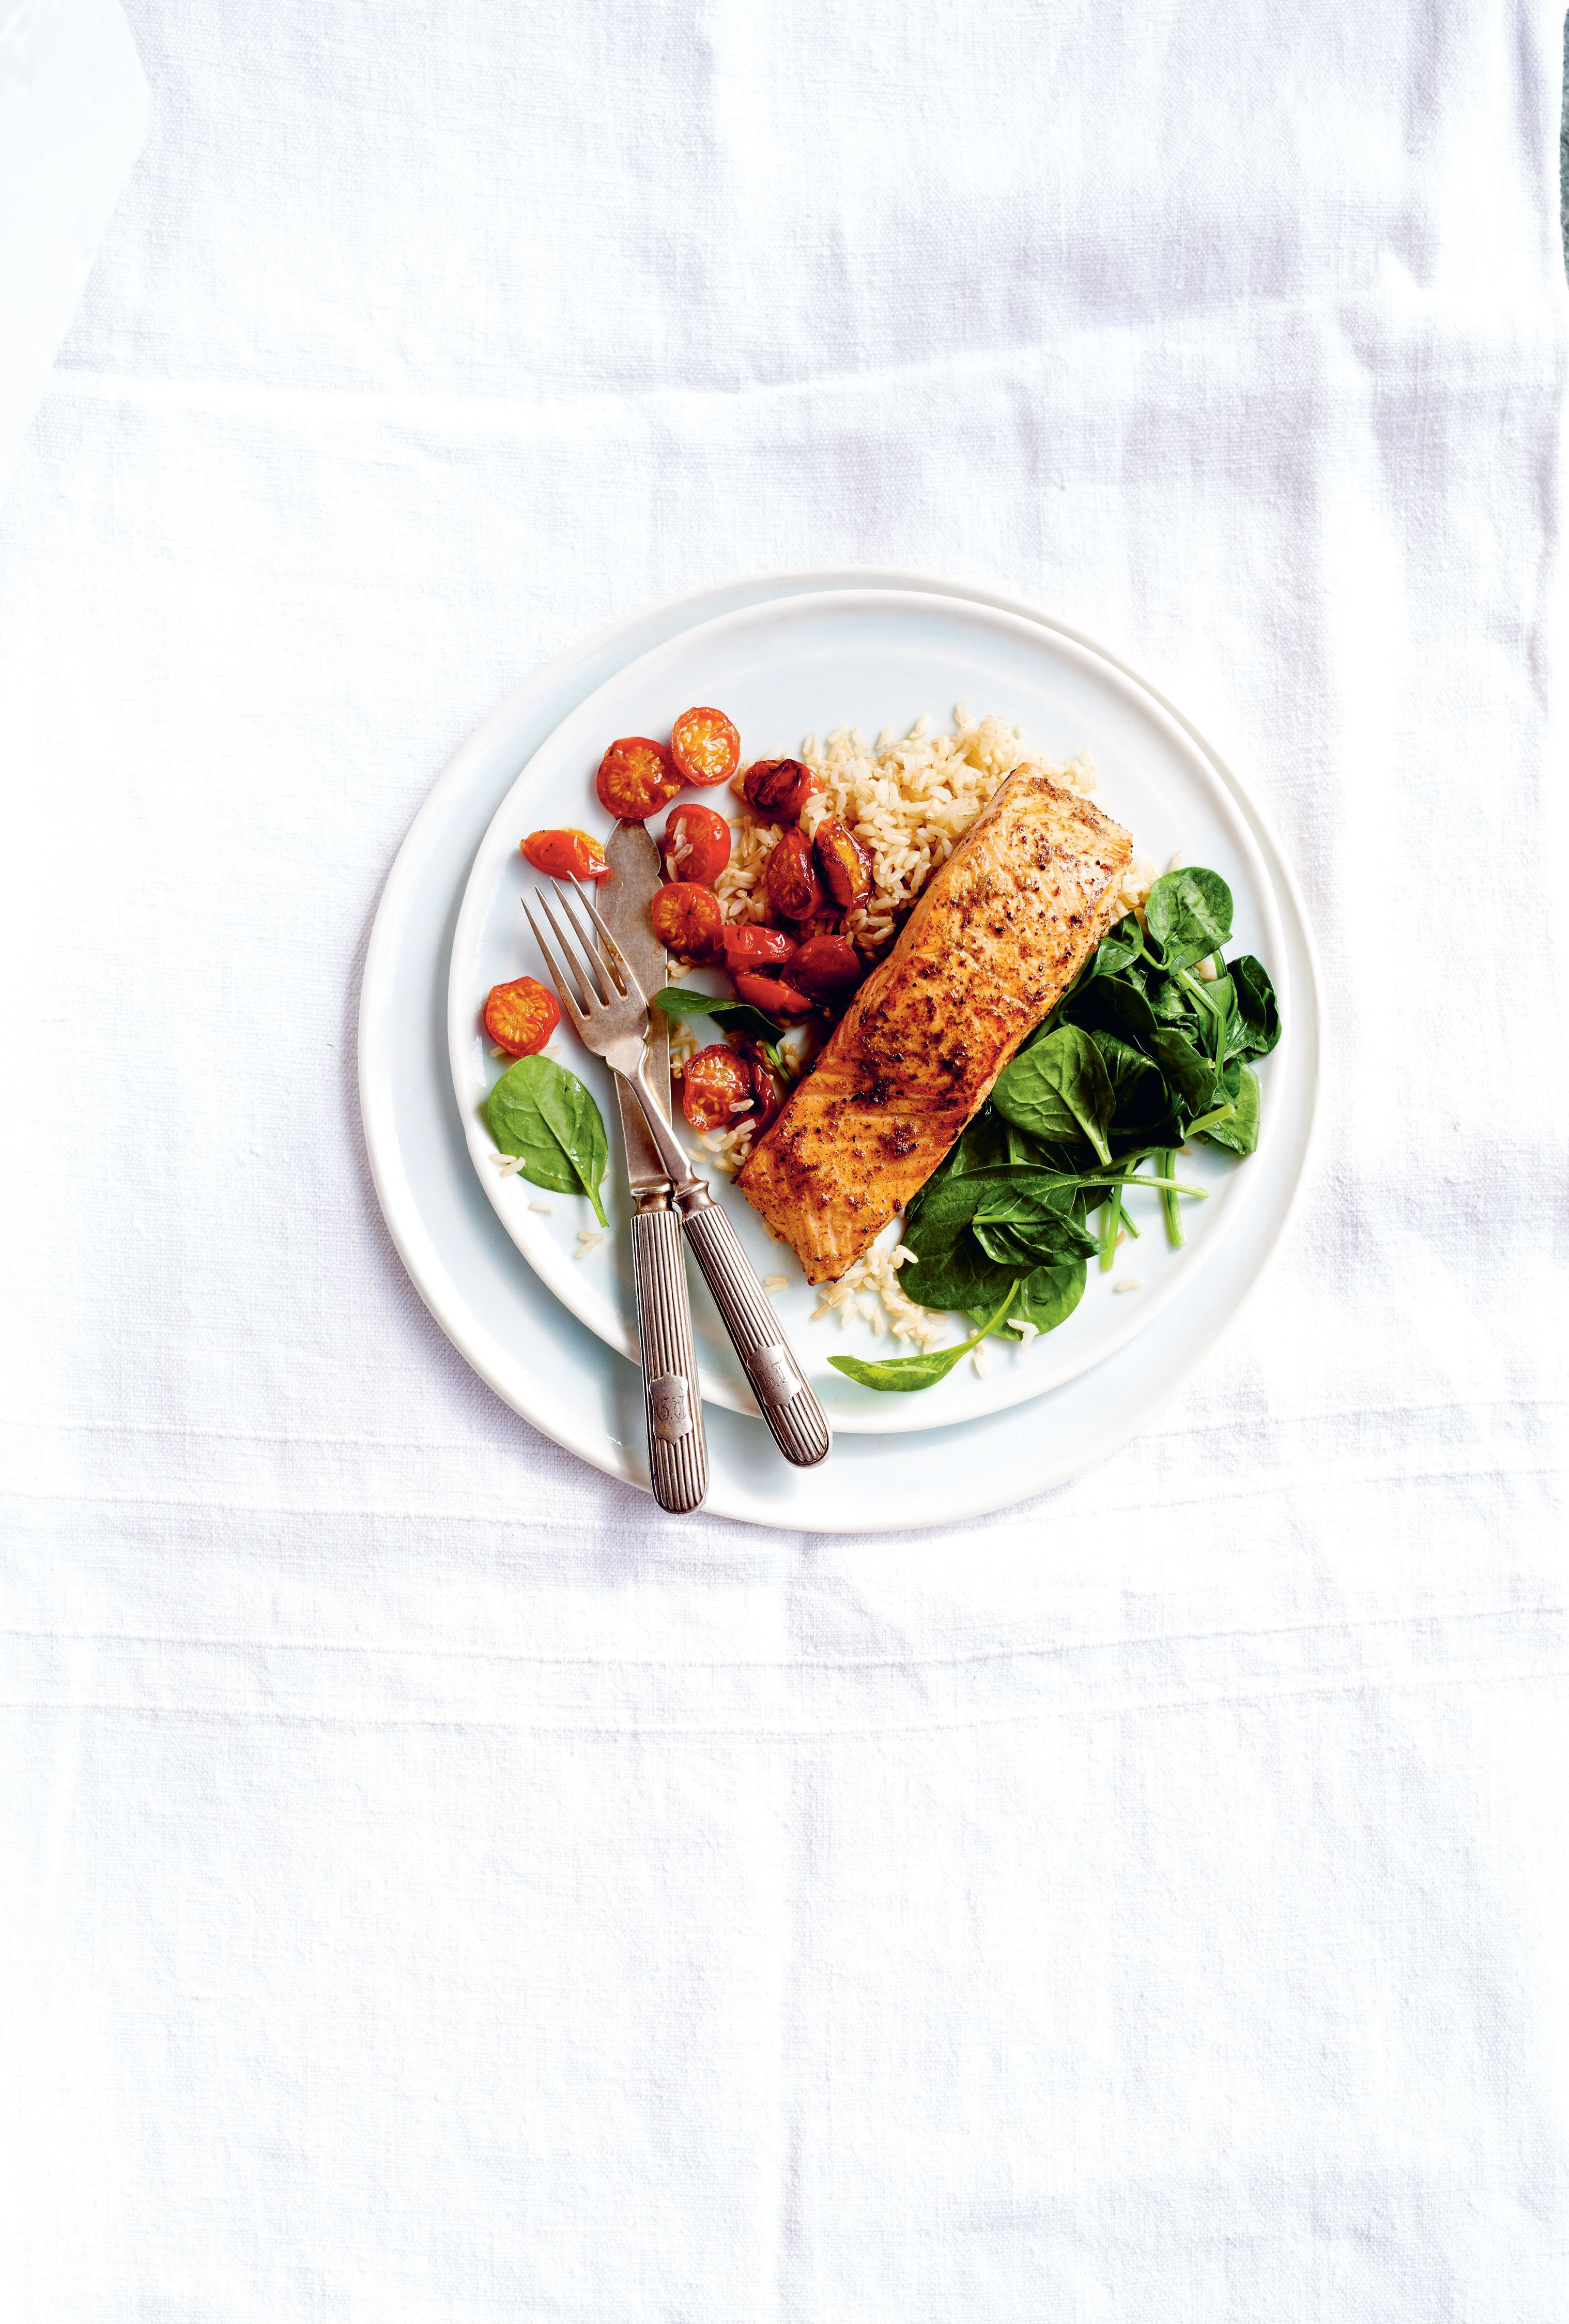 Pan-fried marinated salmon with wilted baby spinach